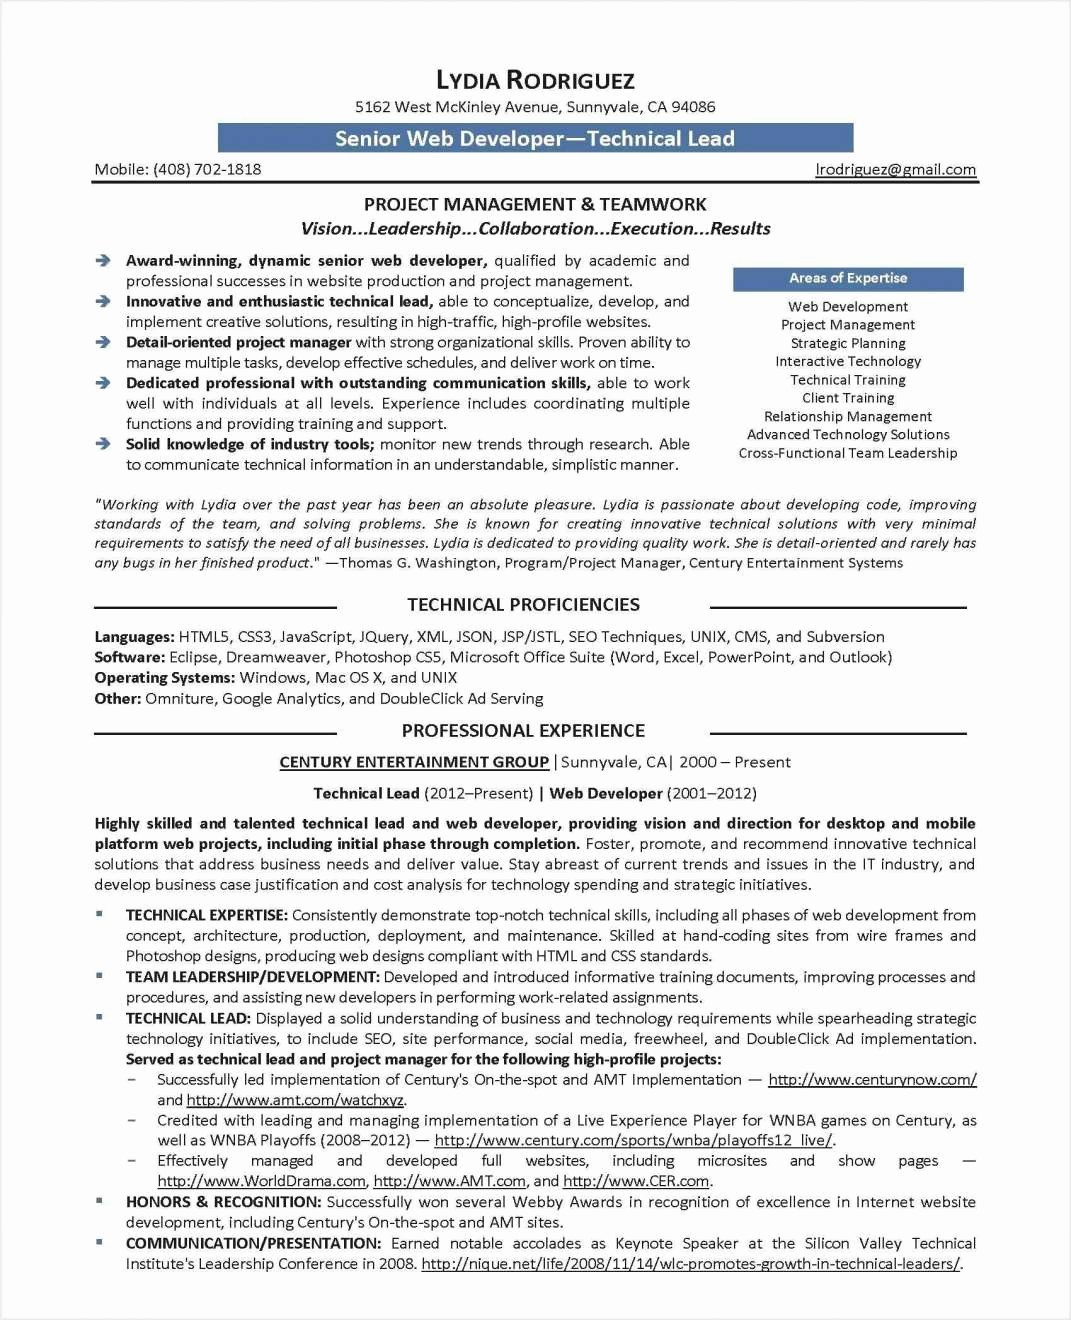 Best Ms Word Resume Template Awesome Free Microsoft Resume Templates Letter Examples 2018 Ms